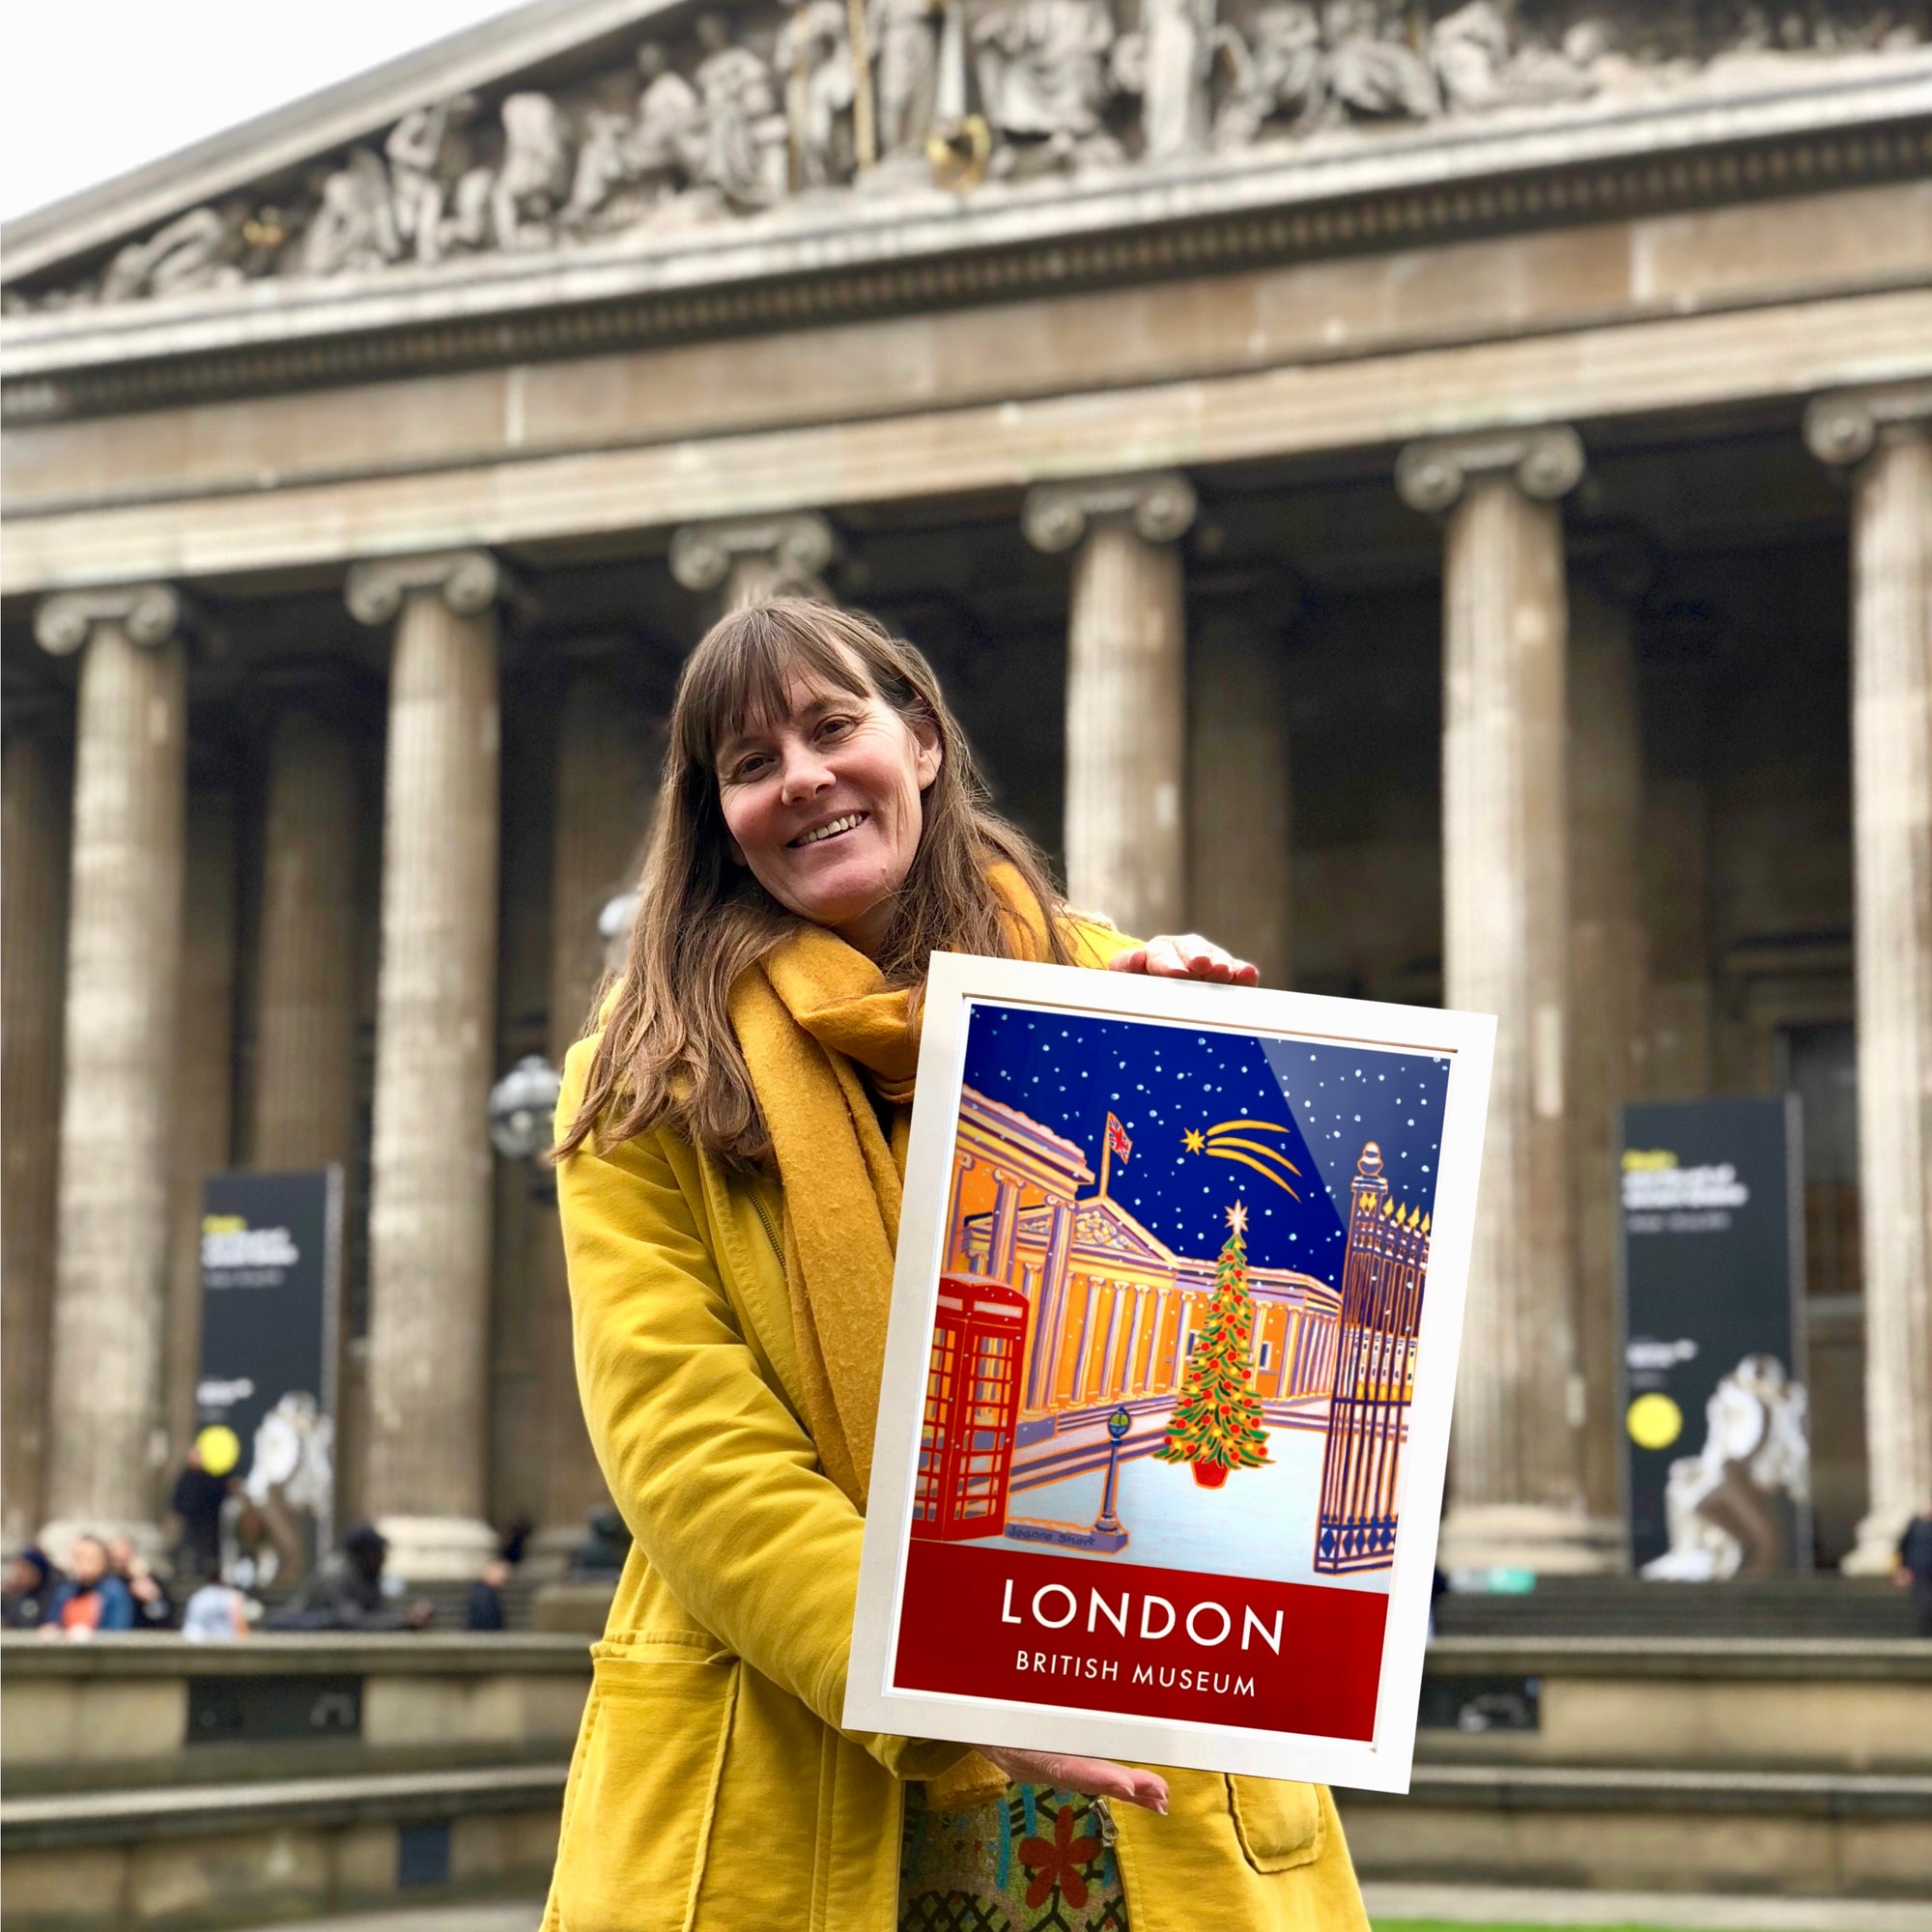 Artist Joanne Short outside the British Museum in London holding one of her new art prints of the museum which forms part of the new range of licensed art products featuring Joanne Short's art.